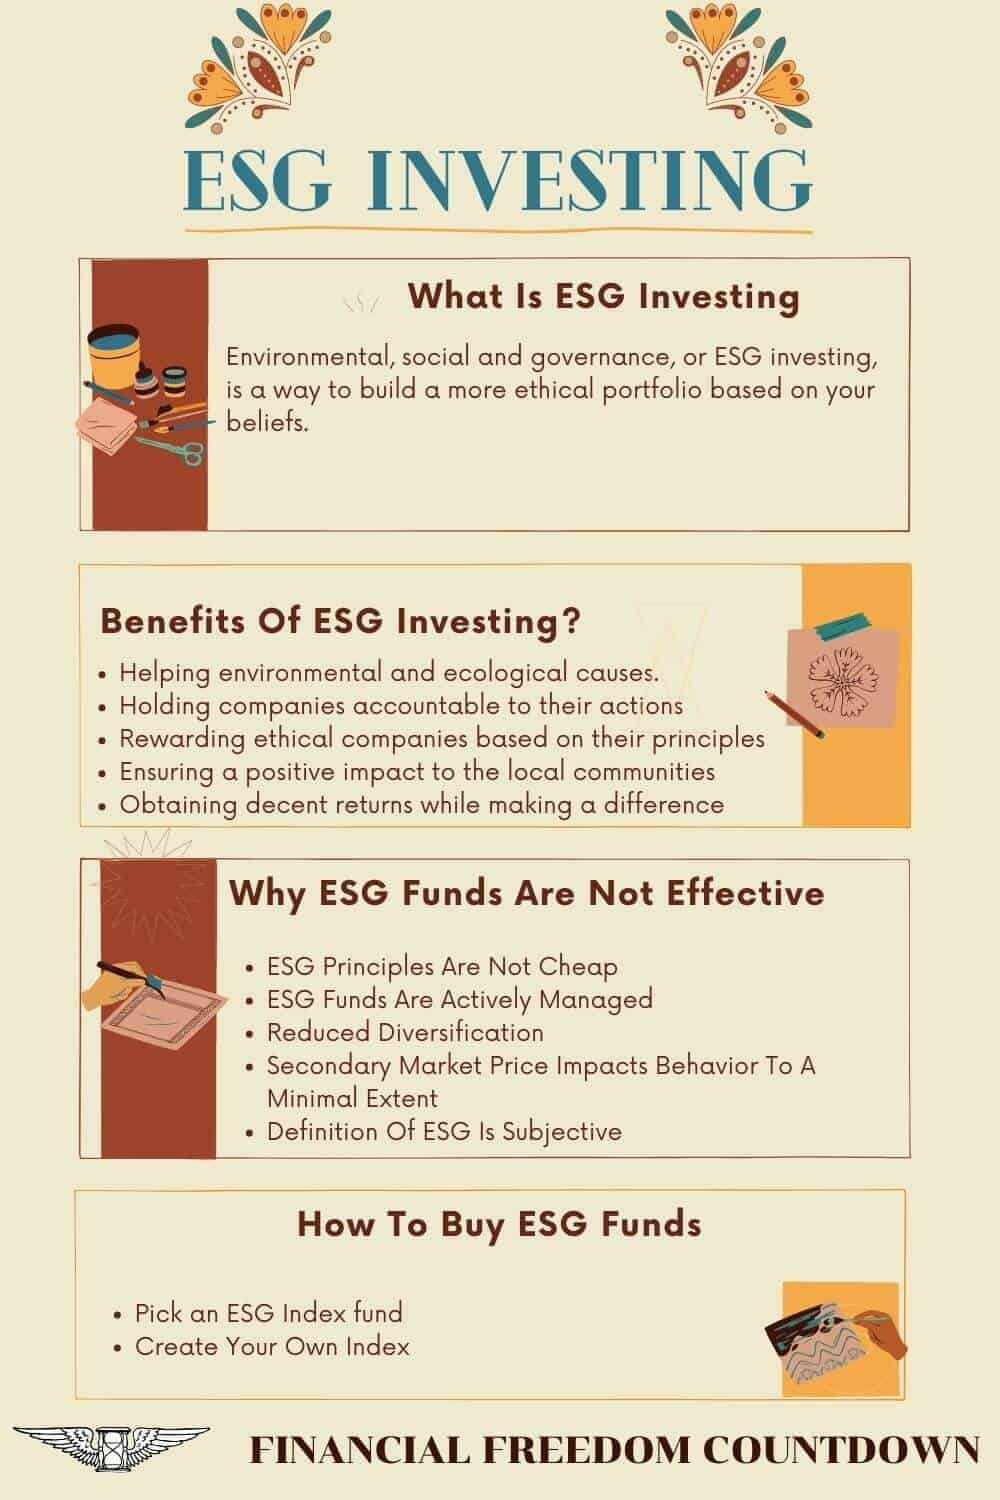 ESG investing is excellent in theory, but here are 5 reasons why ESG funds are a bad idea. Also, how can you create your ESG fund matching your principles?